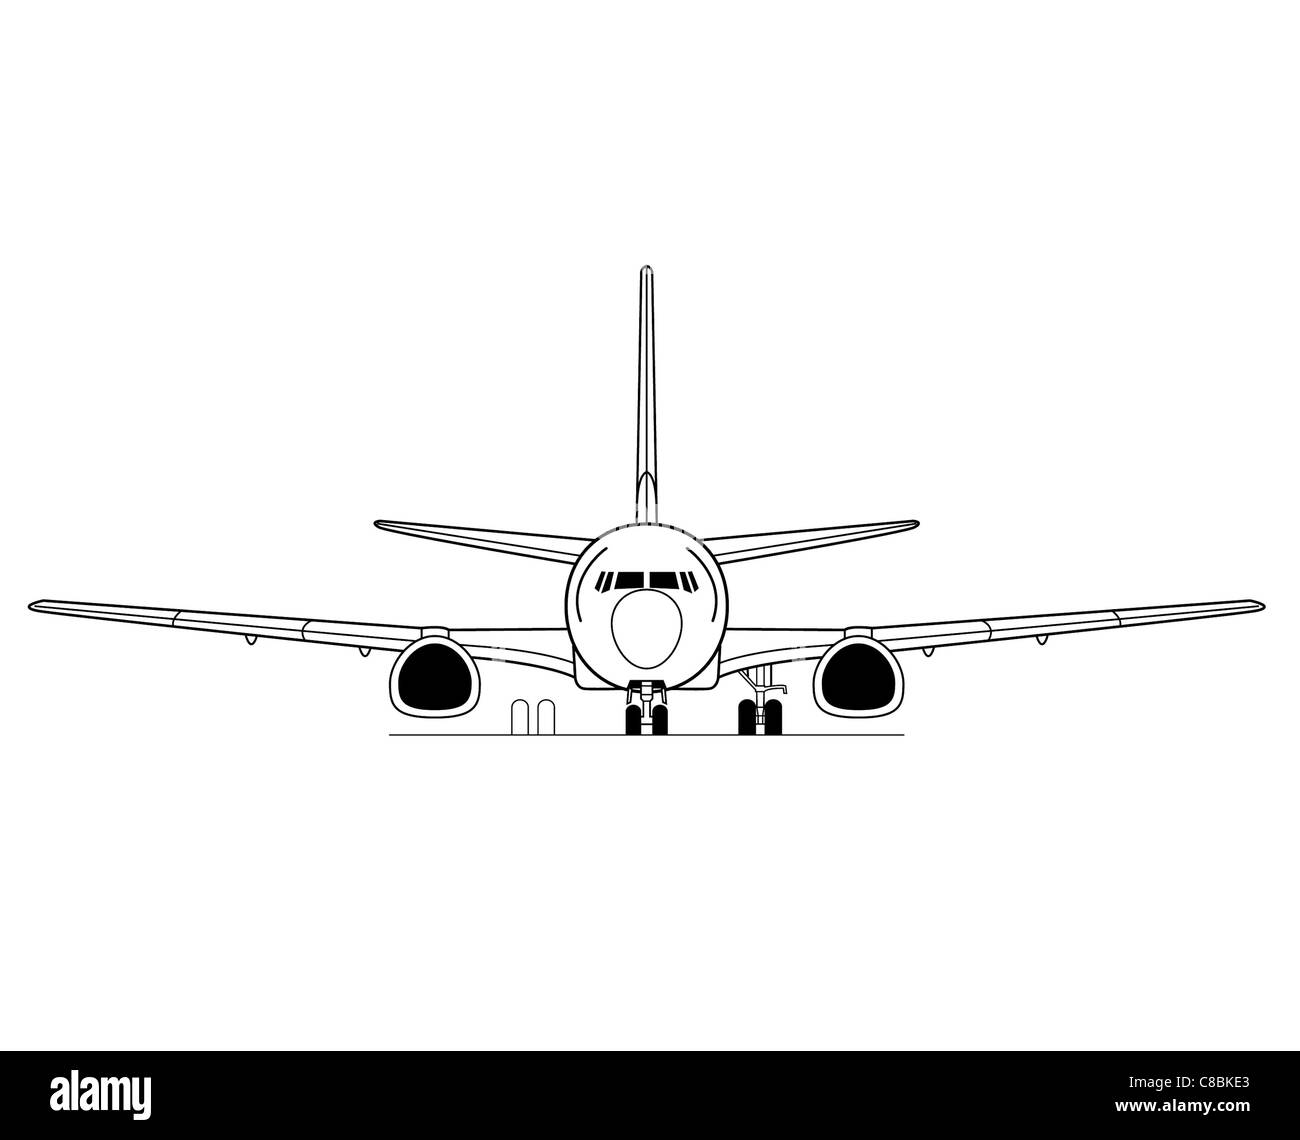 Boeing 737 300 3 View Aircraft Line Art Drawing